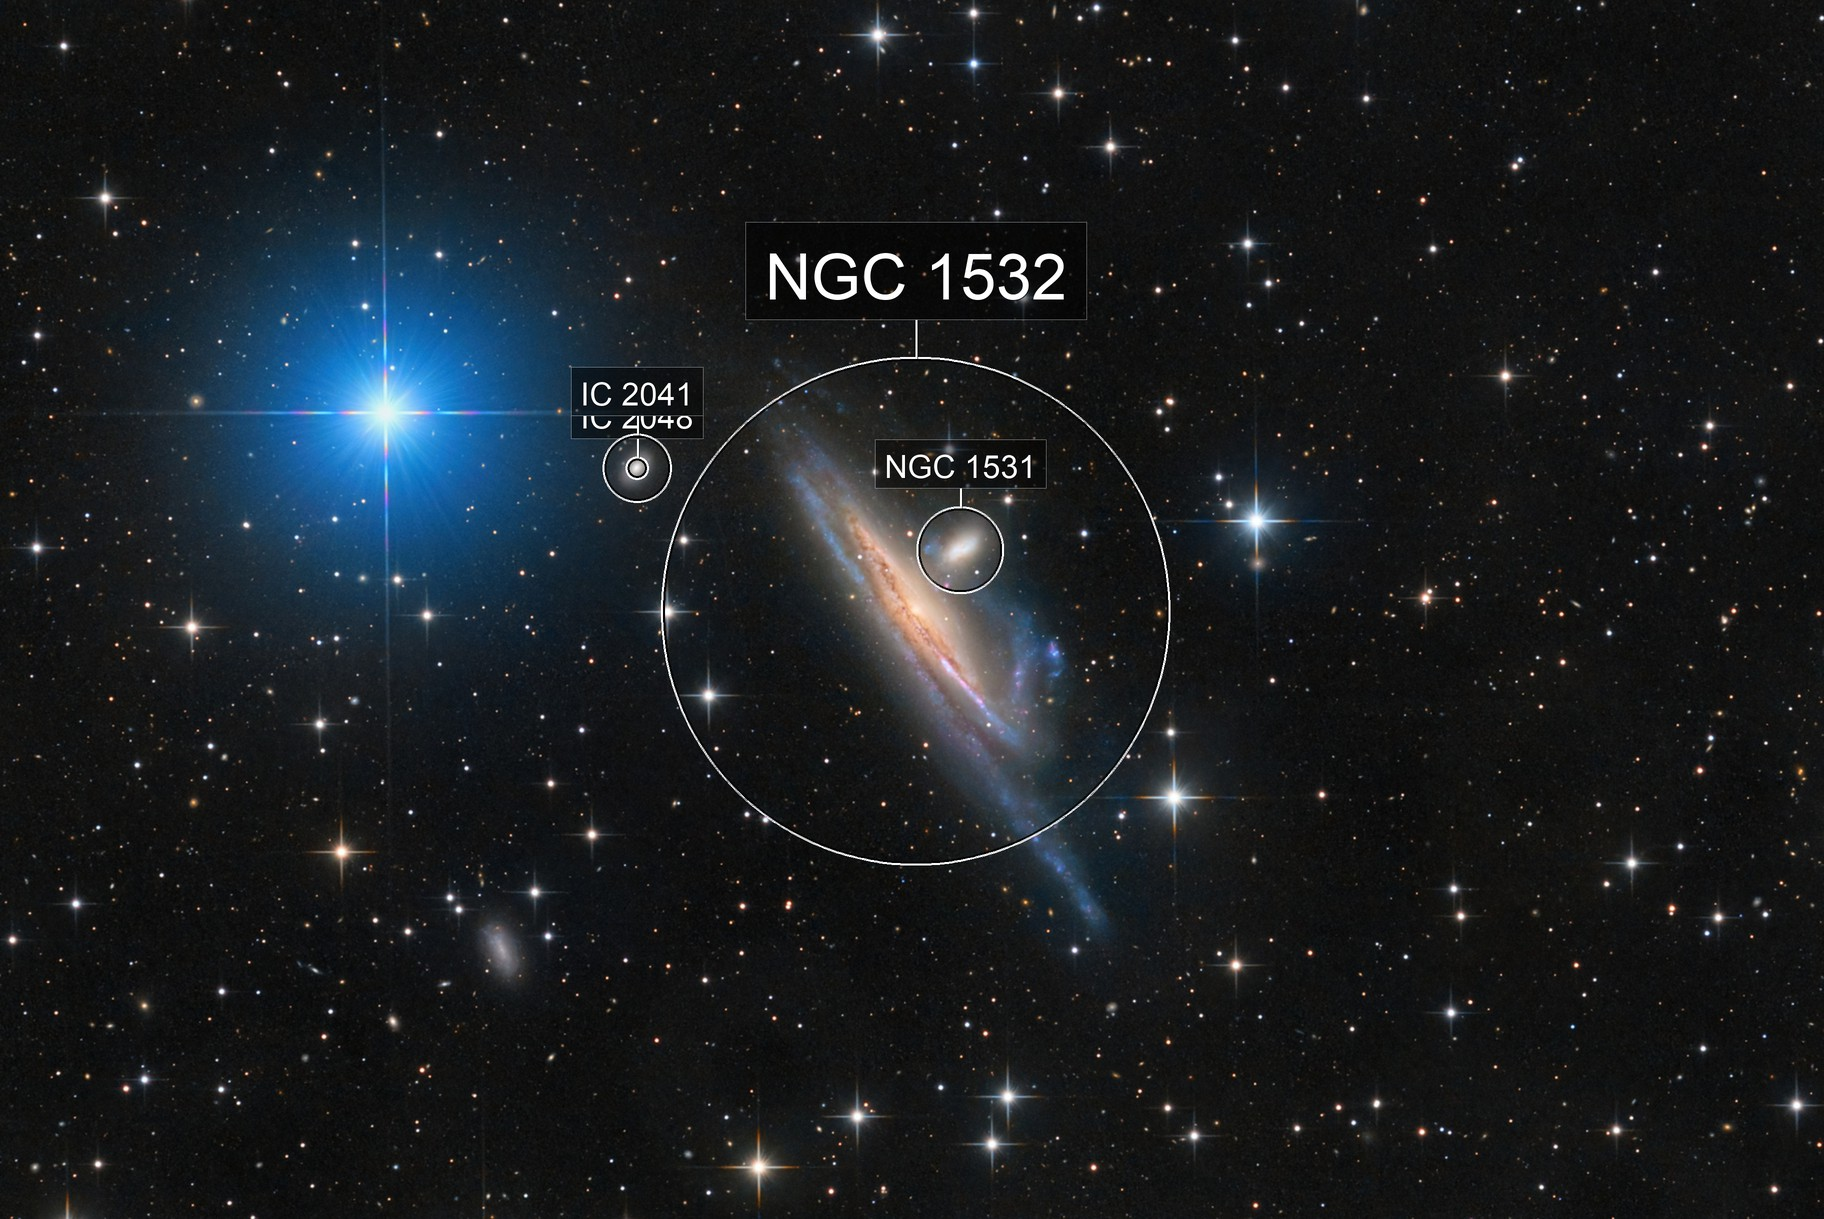 NGC 1532 and friends